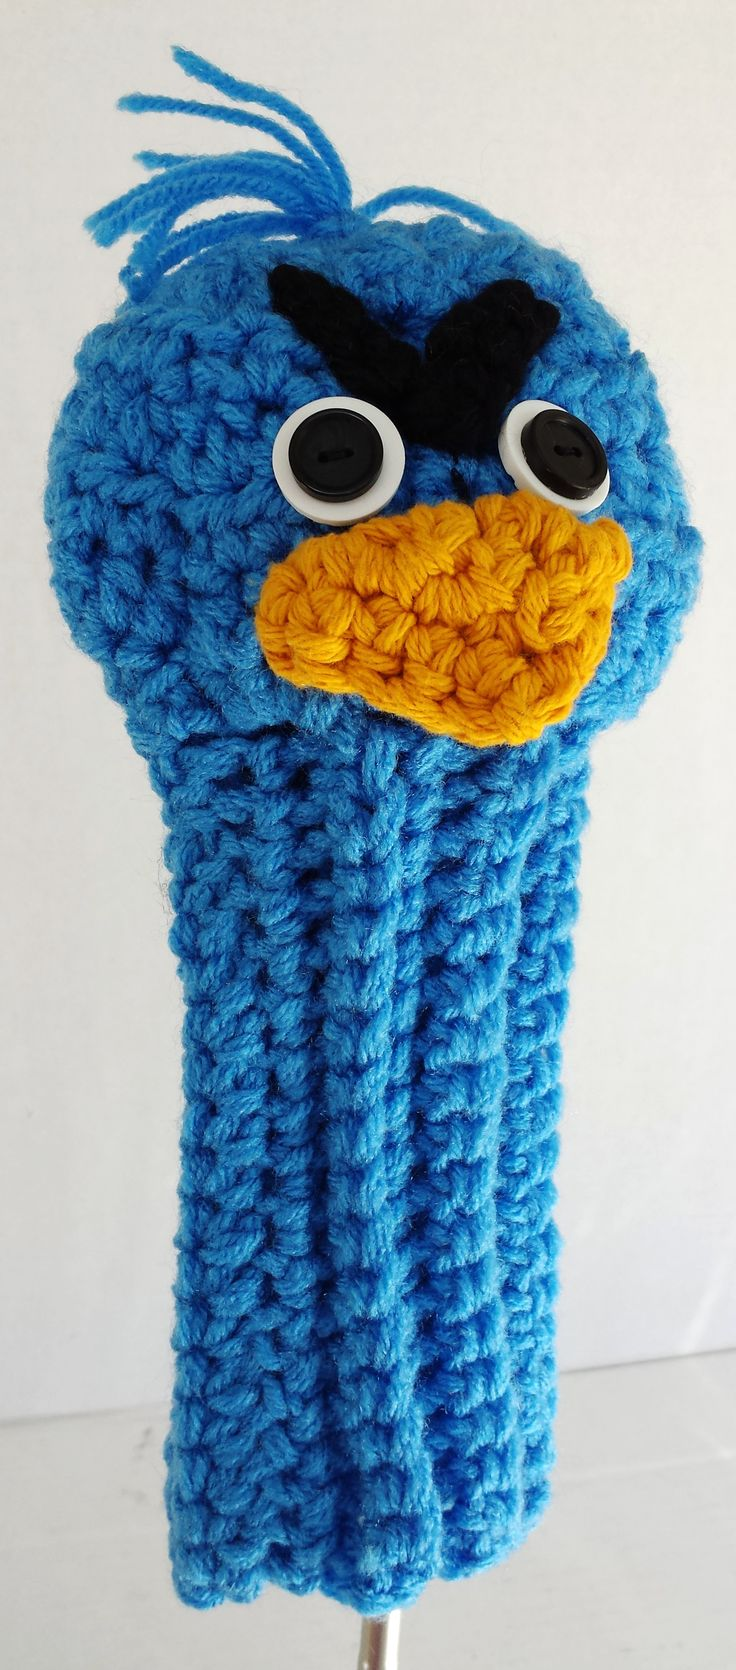 www.etsy.com/... Did you know that Angry Birds are big golf fans? Look at the head on that driver!This eye-catching club cover will intrigue friends and foursomes alike, making you a real hit on the fairway. This fun and funky golf club cover will give everyone something to talk about...even if it isn't your swing.